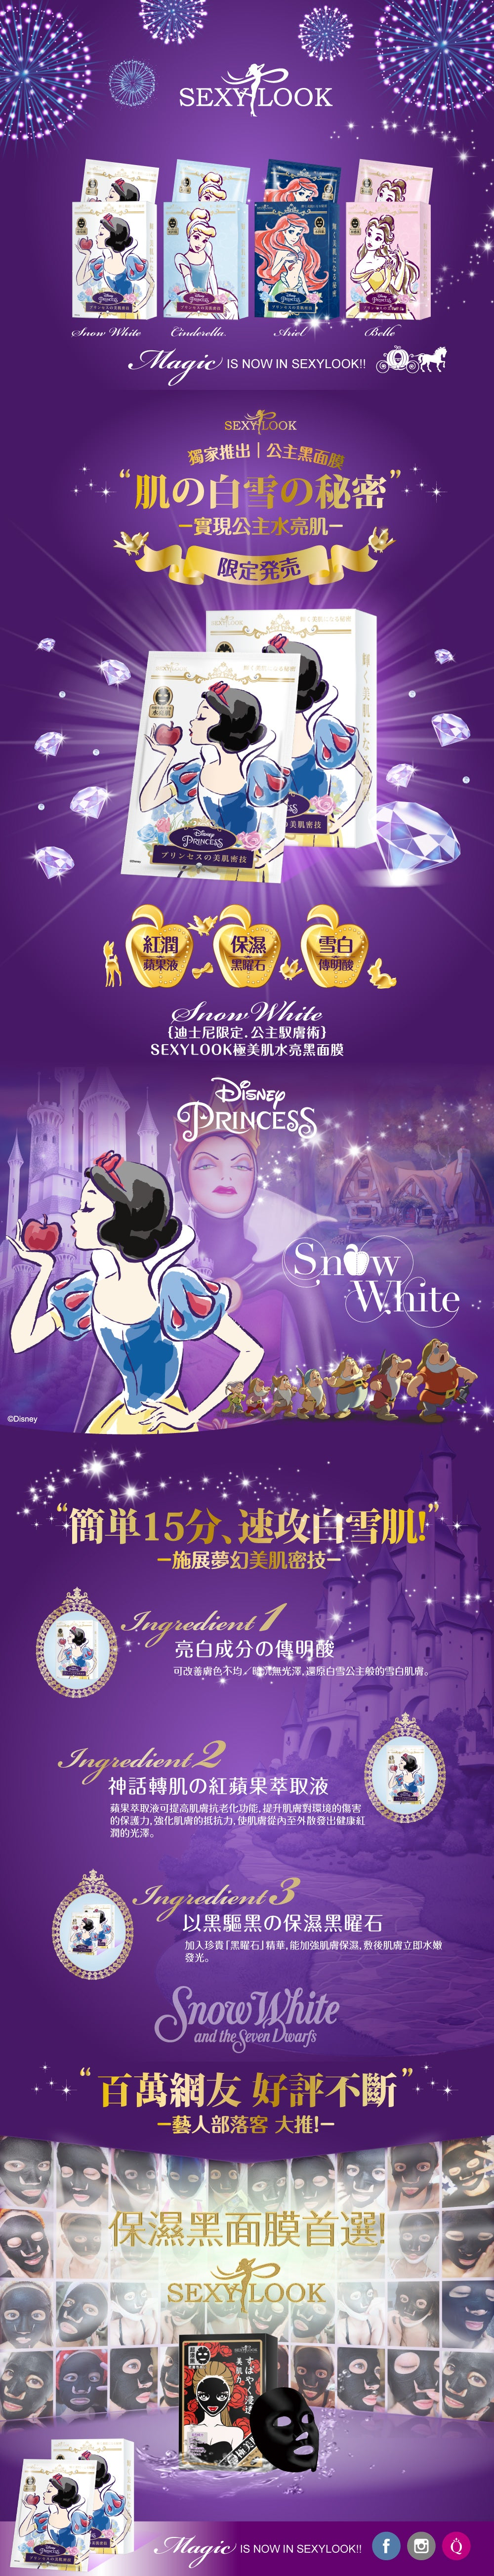 Sexylook Disney Princesses Snow White Black Mask Apple extract can improve the function of skin aging, improve skin damage to the environment protection force, strengthen the skin's barrier, leaves skin radiant. The main ingredients include: Macromolecular hyaluronic acid, tranexamic acid, small molecule hyaluronic acid, malic acid, France Chiba rose water, GIGAWHITE flowers fine extraction, and extraction obsidian.  4 masks x box  Made in Taiwan